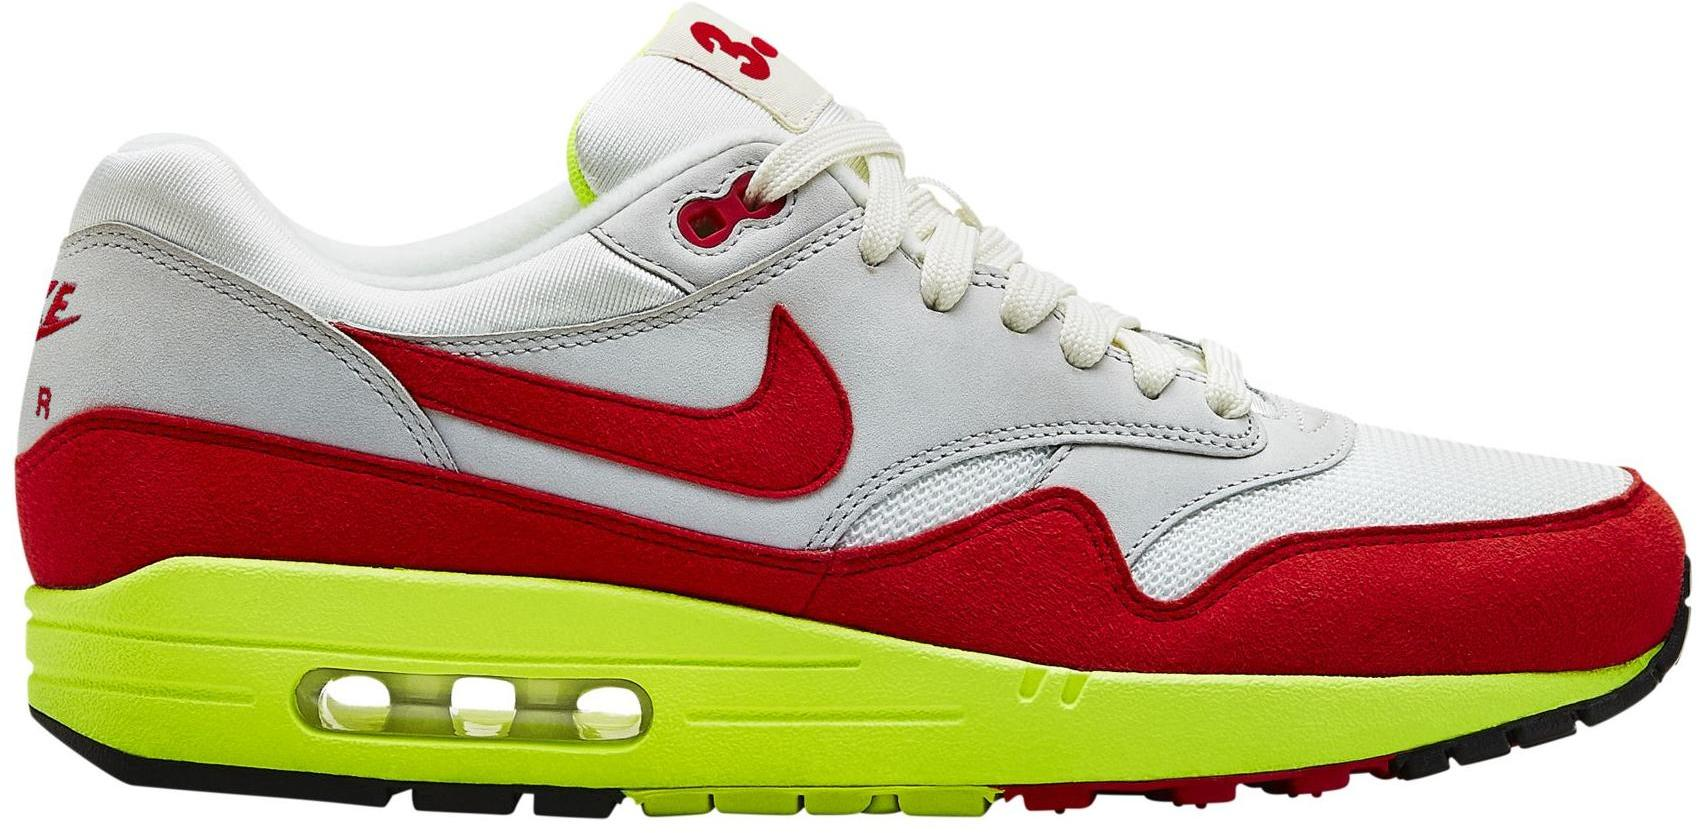 Nike Air Max 90 Independence Day Red. Entrega Inmediata !